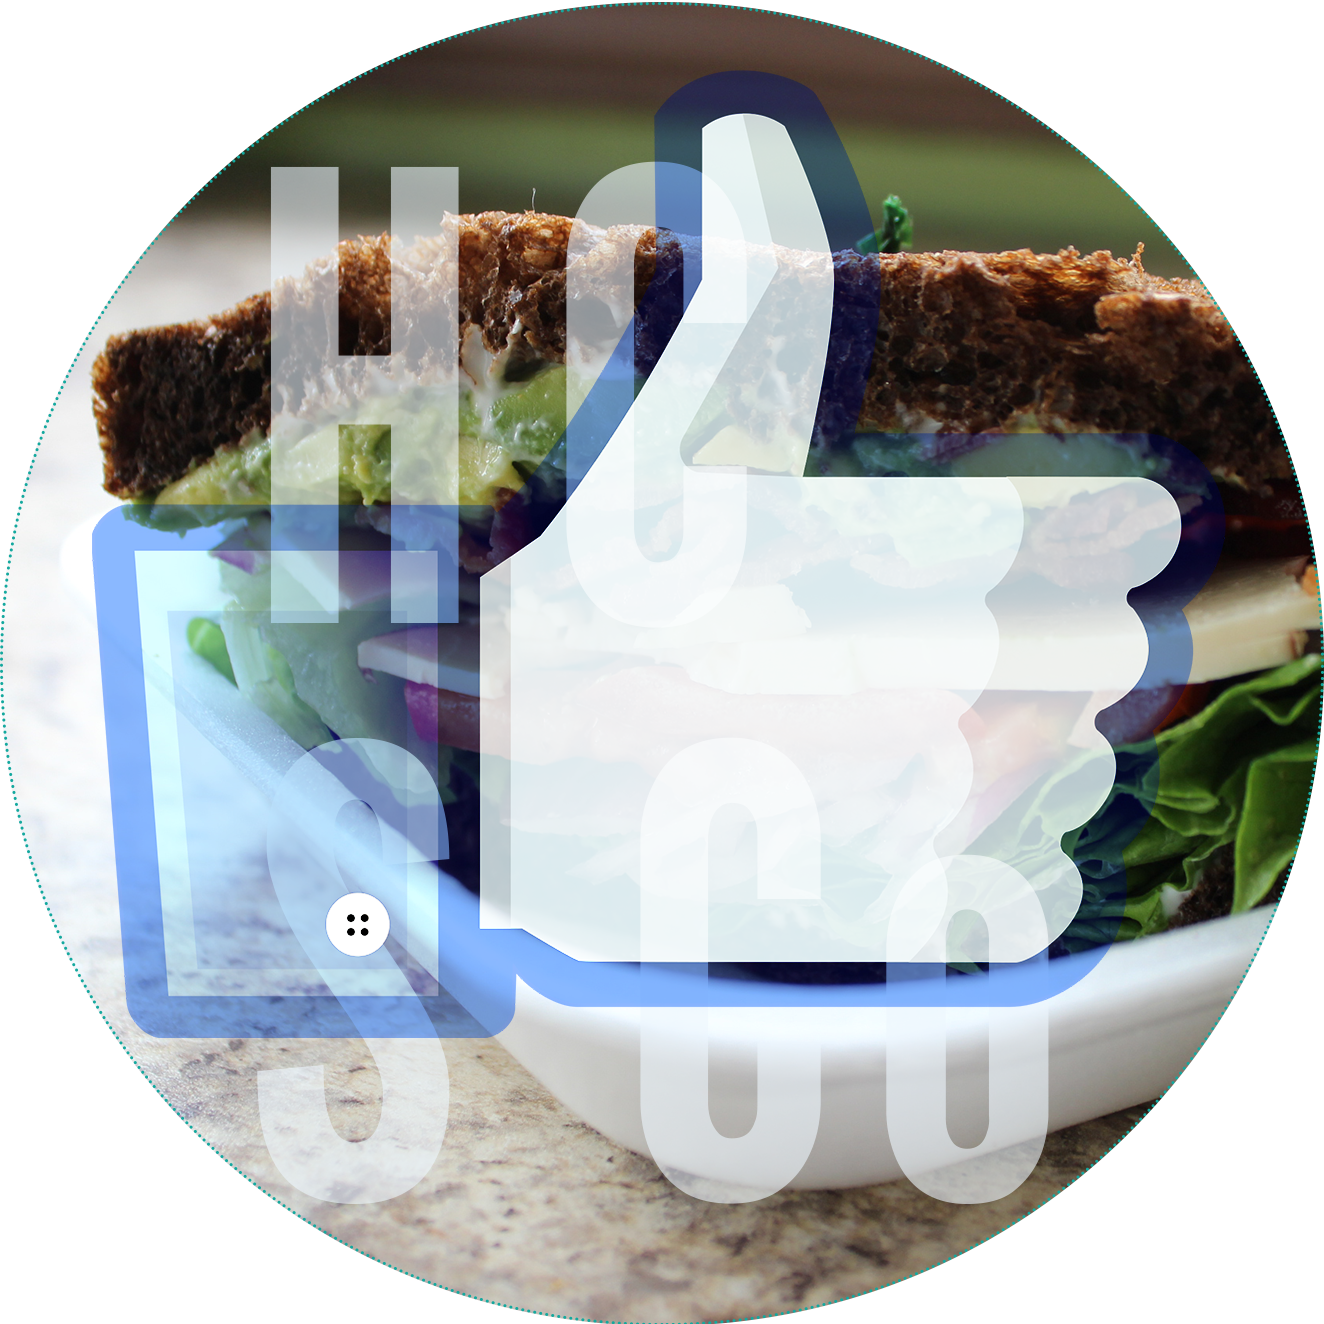 fb-like-circle1.png